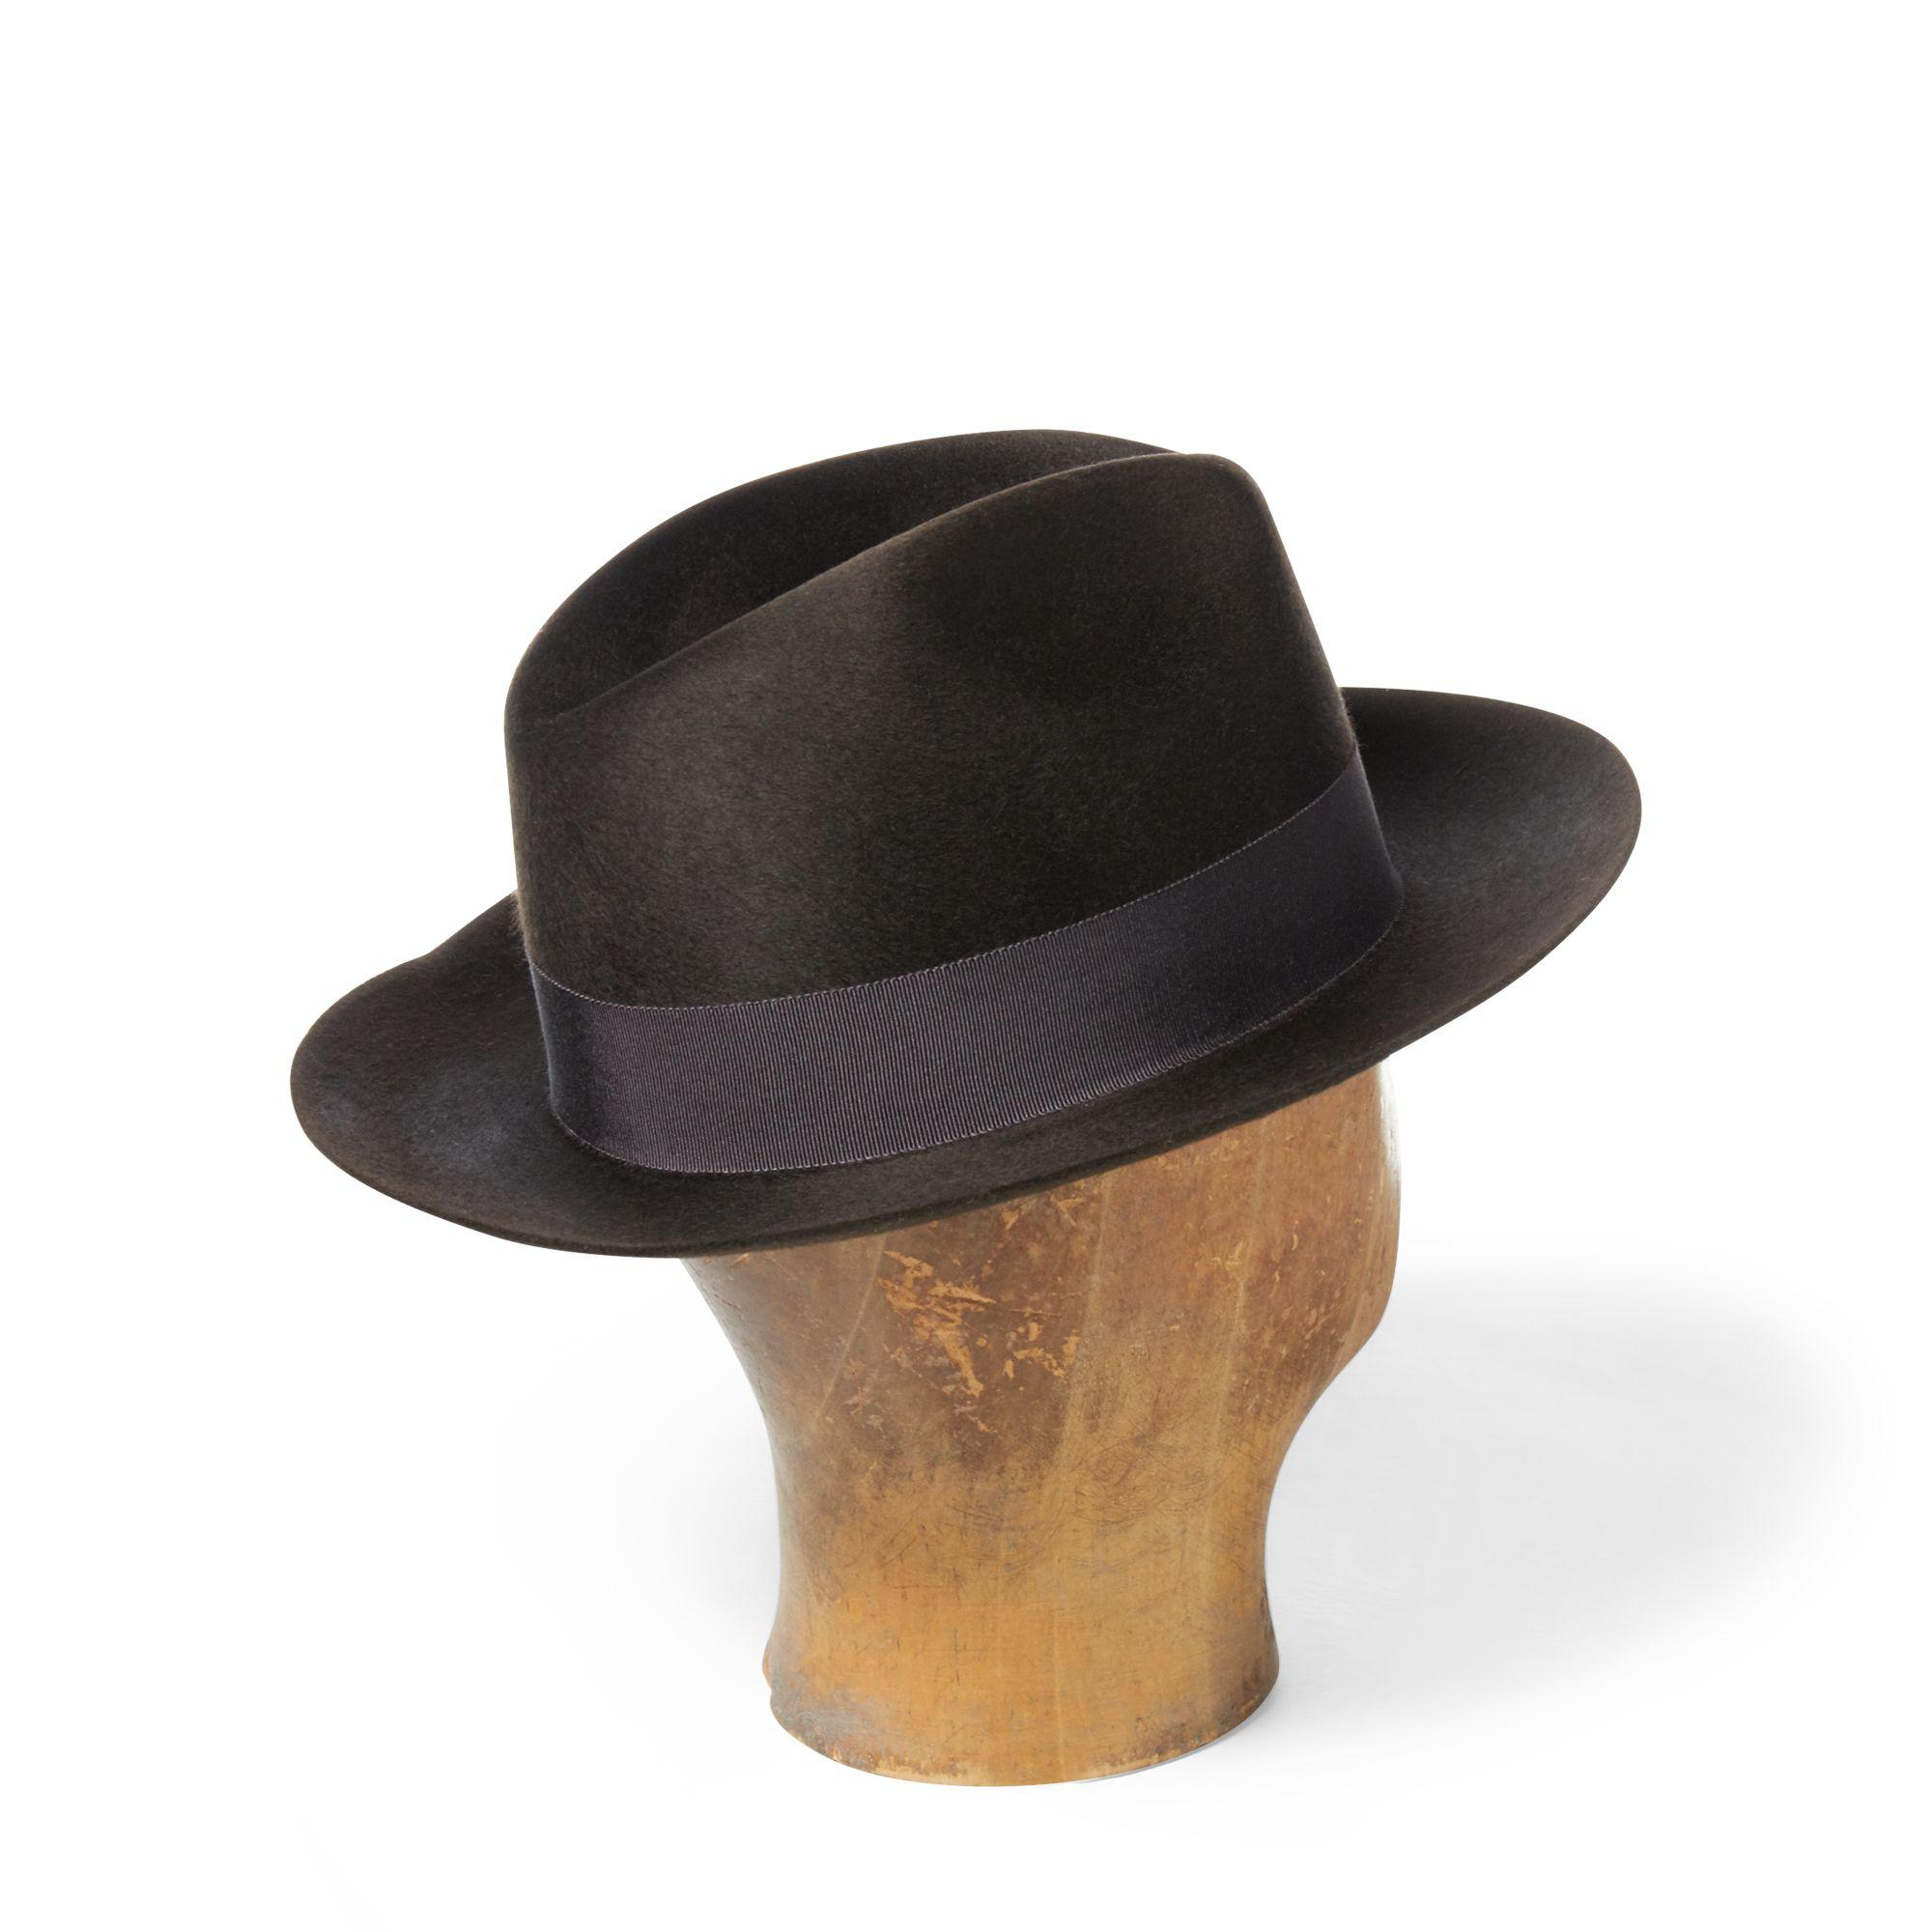 e54f2933c3a3b ... Wool Felt Fedora for Men - Lyst. View fullscreen